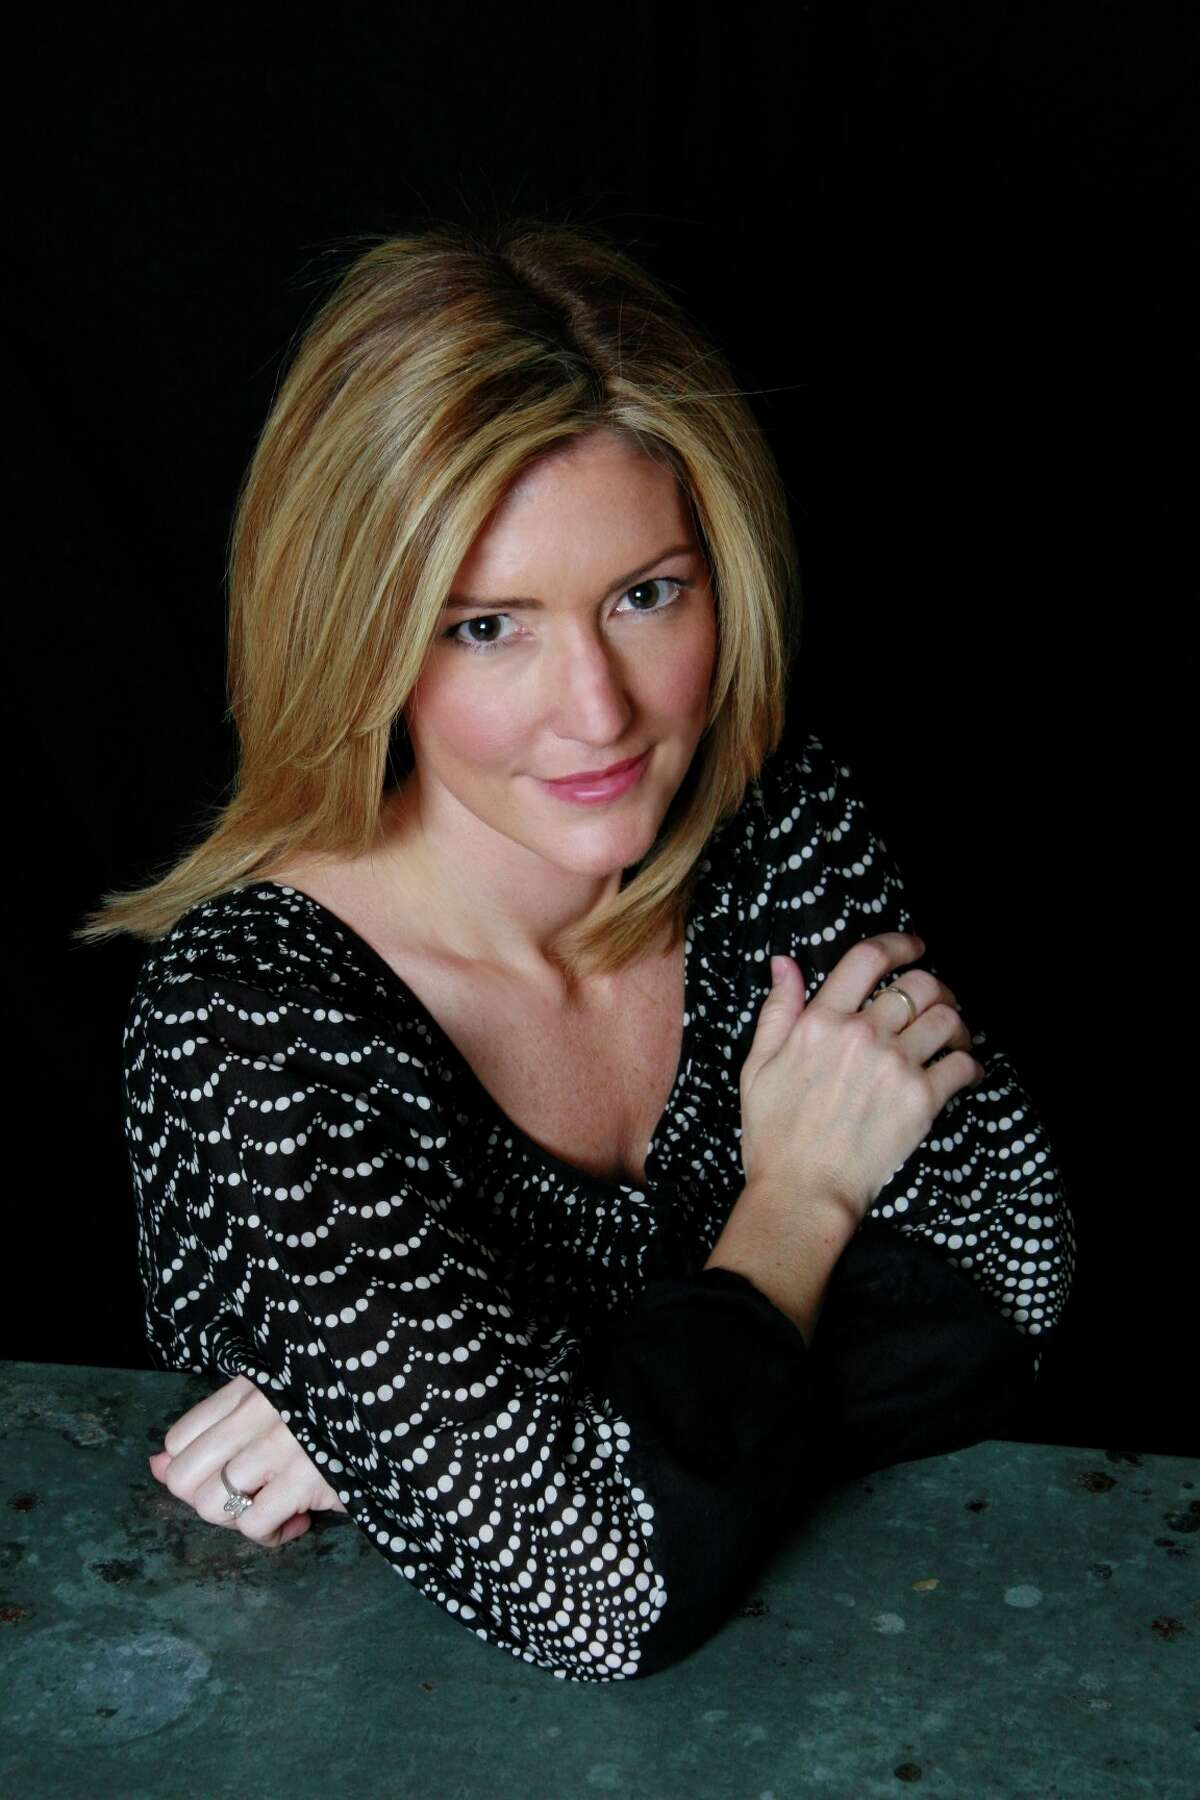 Kathryn Stockett received dozens of rejection letters before